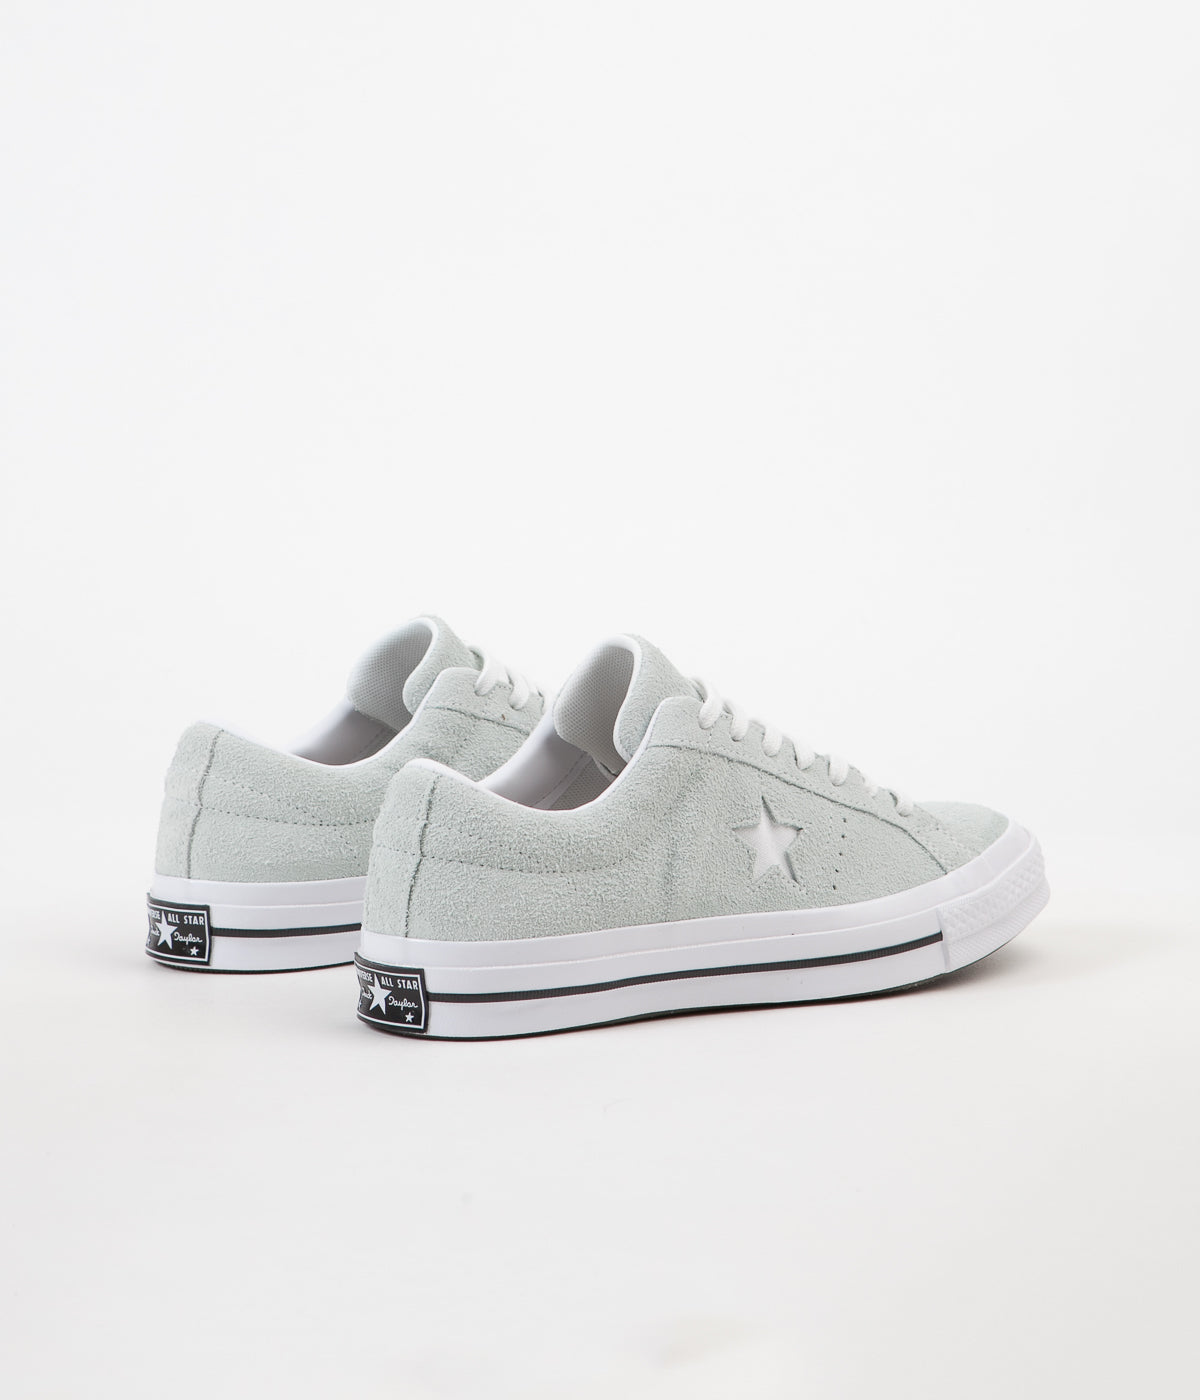 ... Converse One Star Ox Shoes - Dried Bamboo   White   Black ... 363c0876c